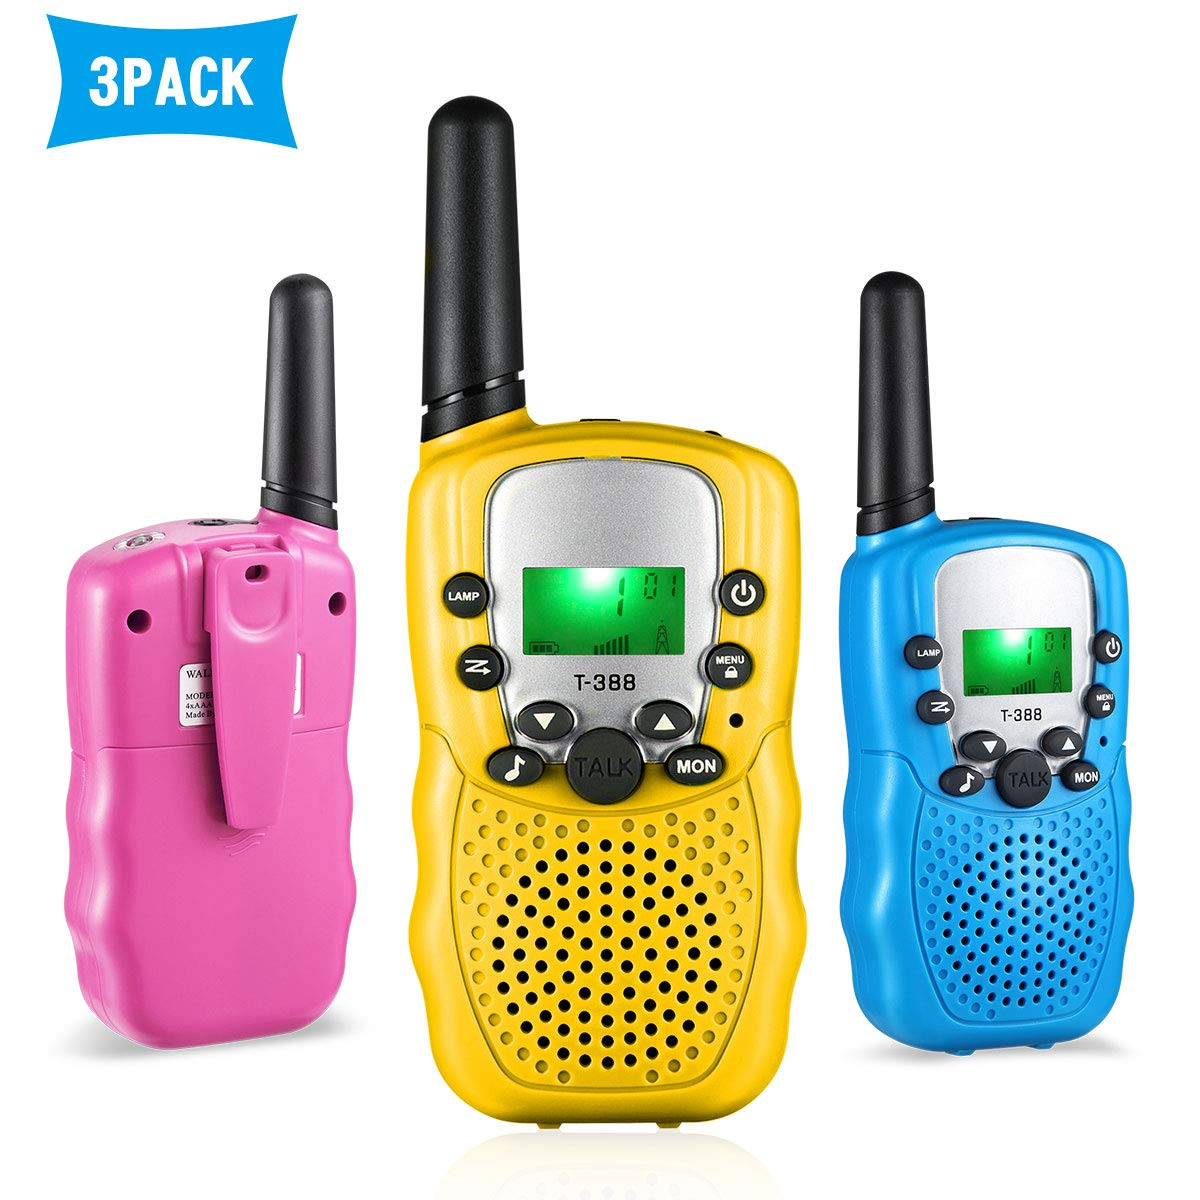 HOCOMO Walkie Talkies for Kids 3 Pack Gift for Girls Boys 22 Channels Two Way Radio 3 Miles Range Flashlight LCD Walkie Talkies for Outdoor Adventures, Camping, Hiking Blue/Pink/Yellow